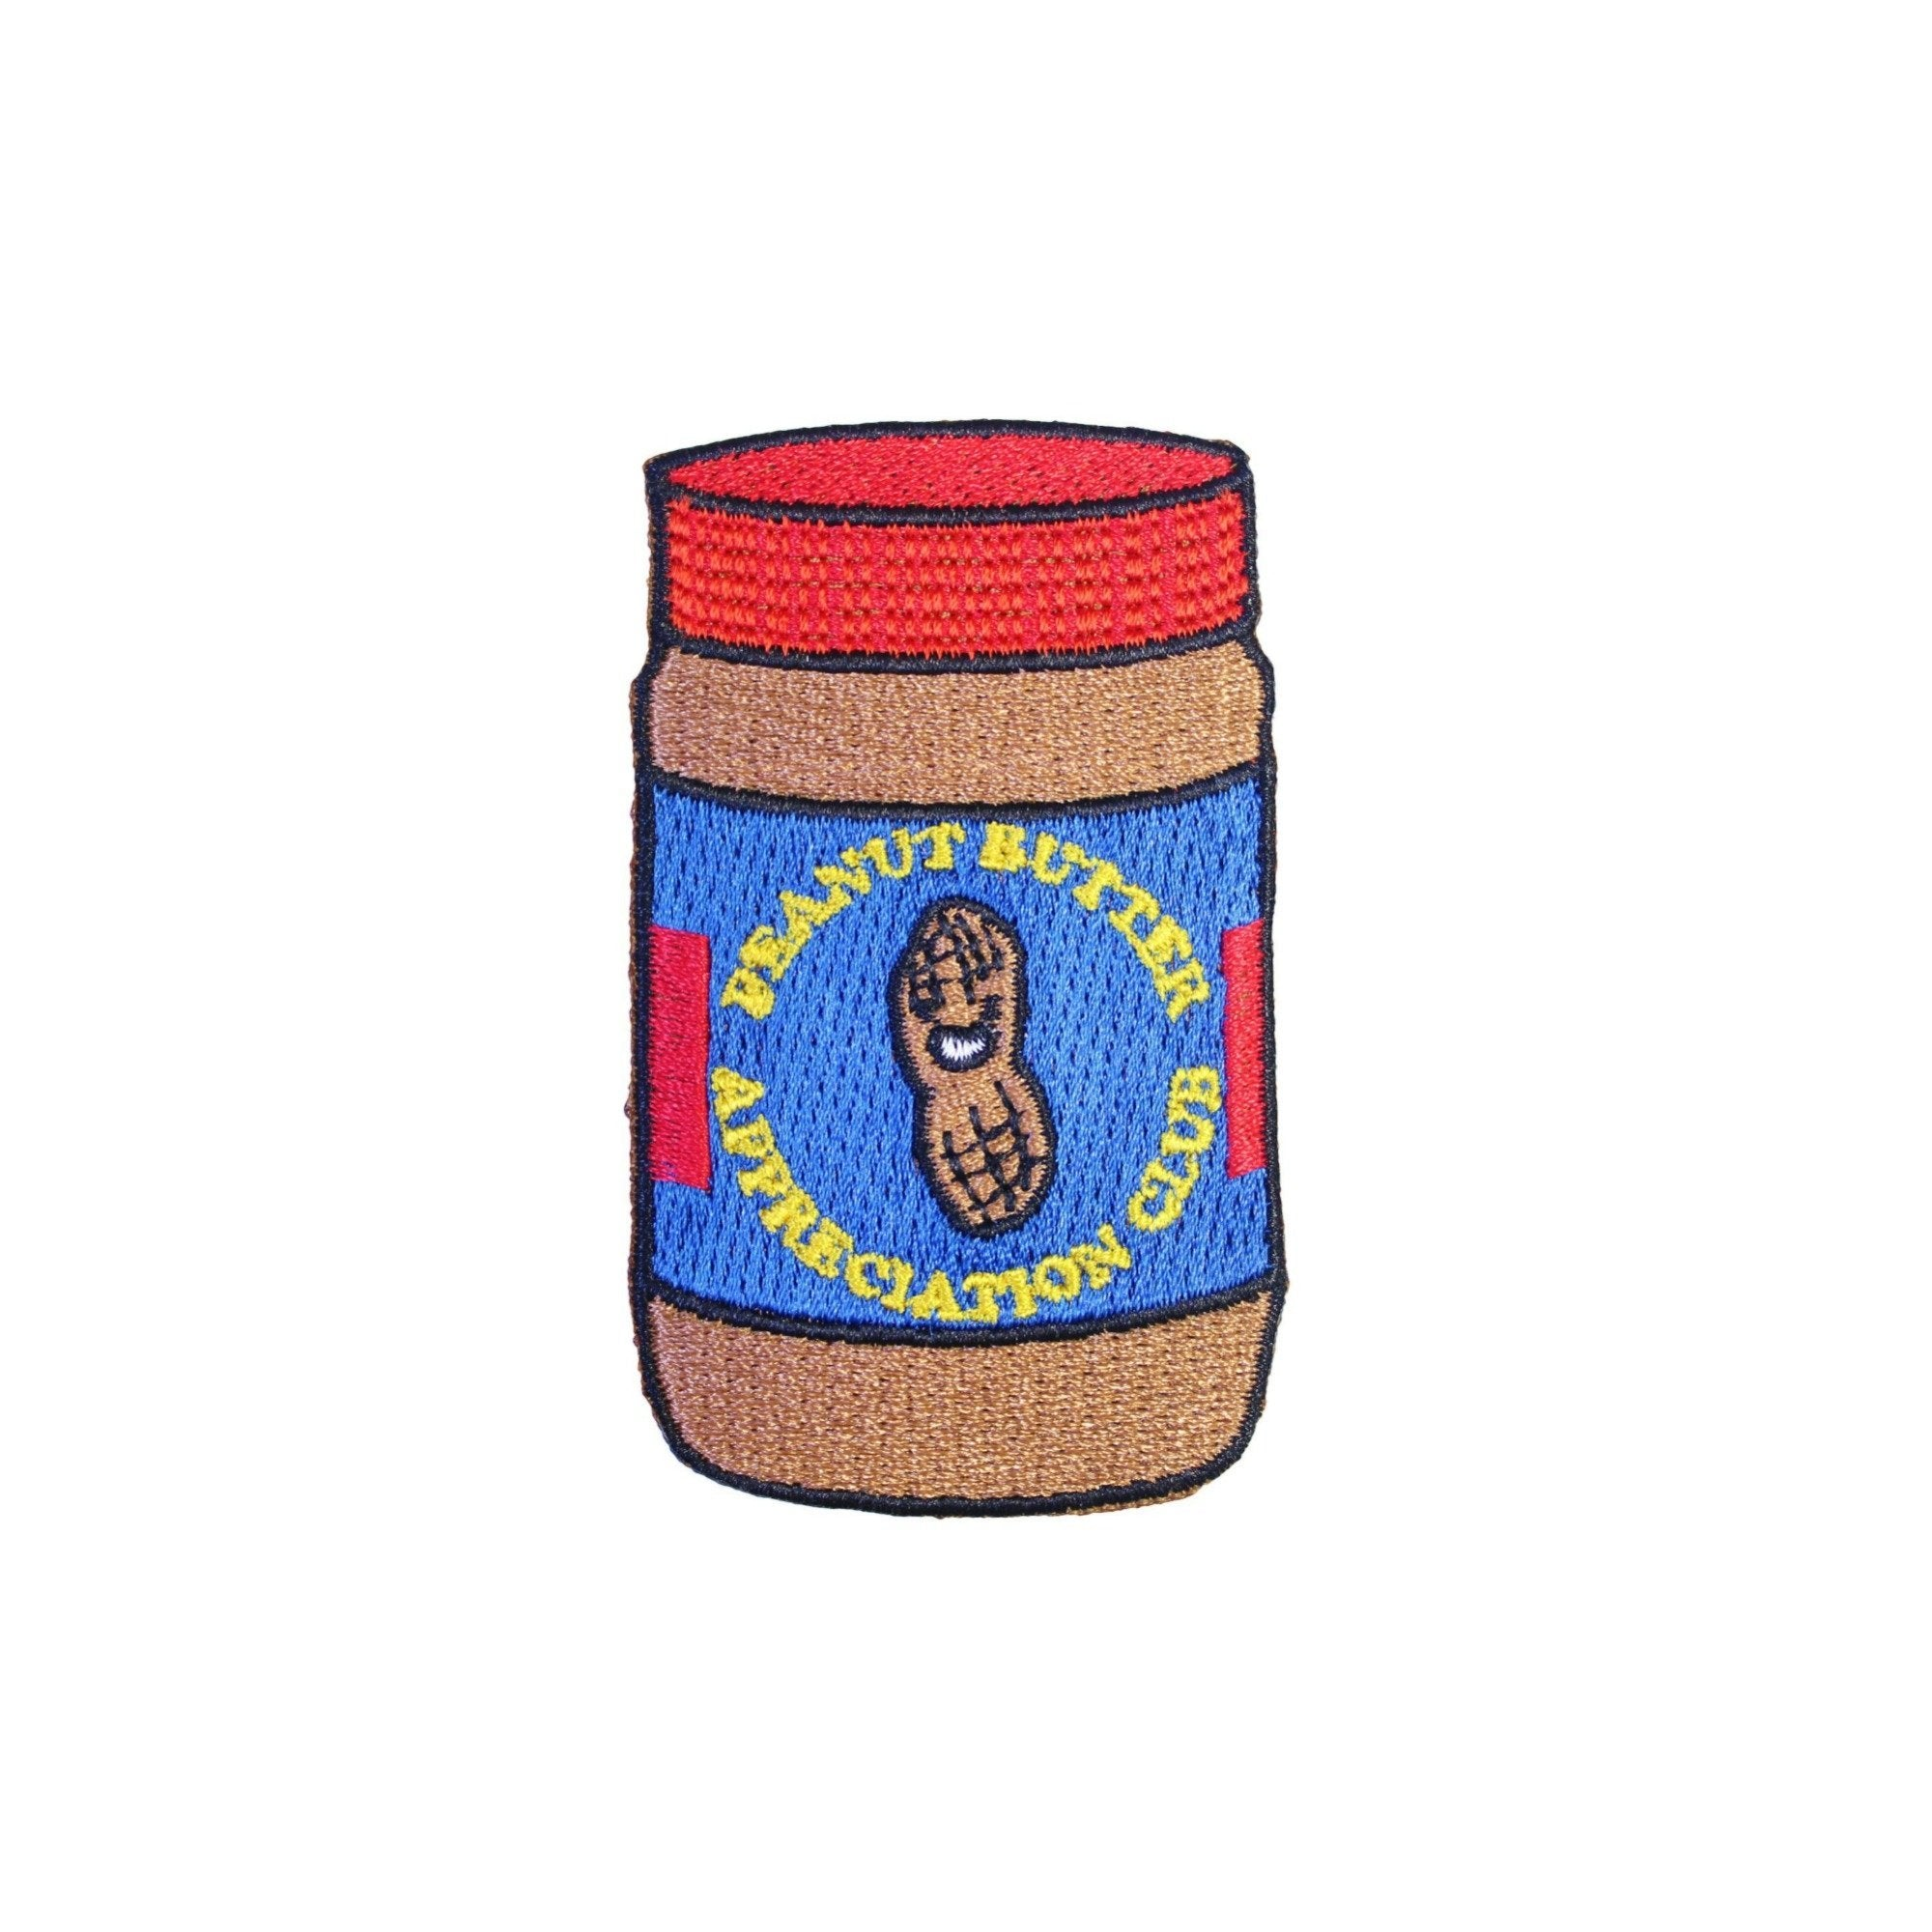 Peanut Butter Appreciation Club Iron On Patch - Minimum Mouse